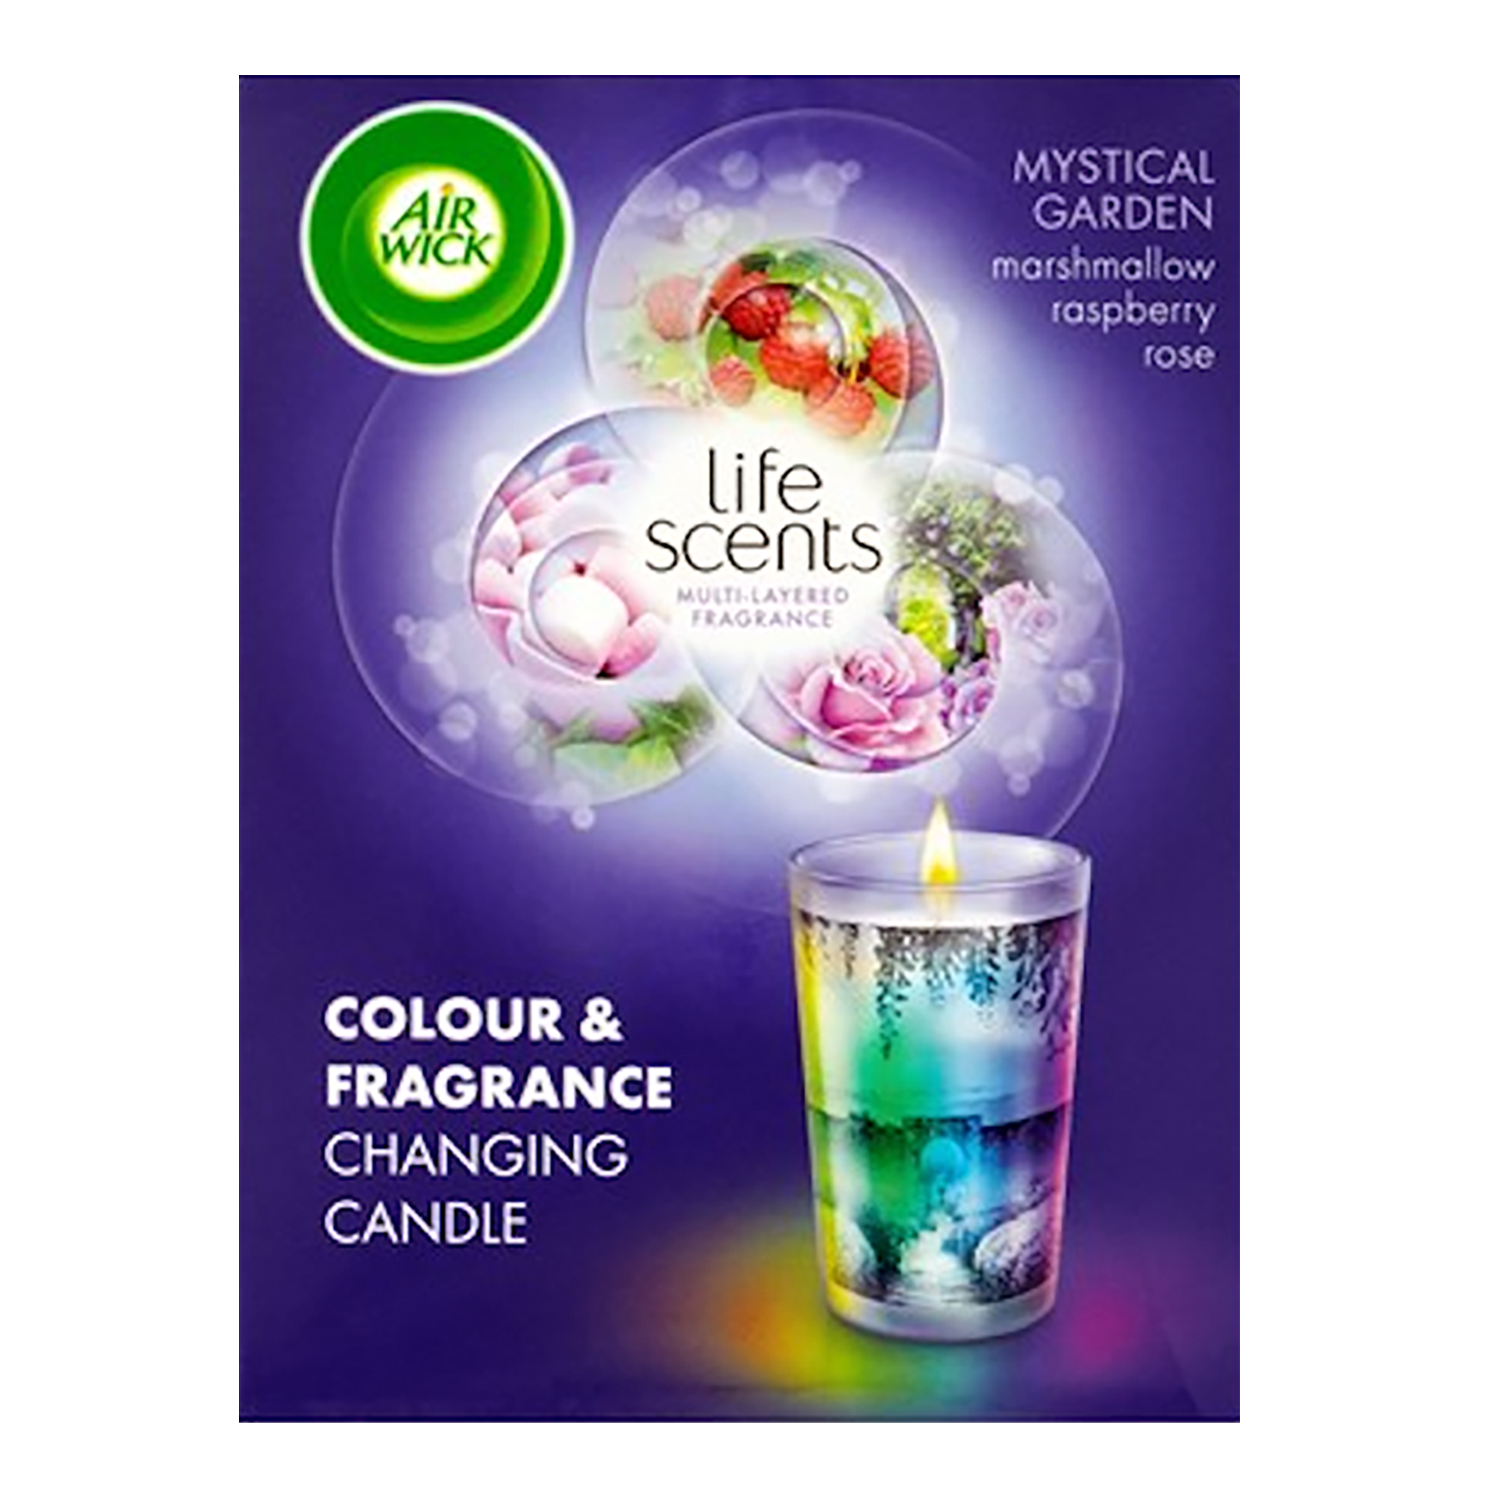 Air Wick Candle Life Scents Mystical Garden 140 g